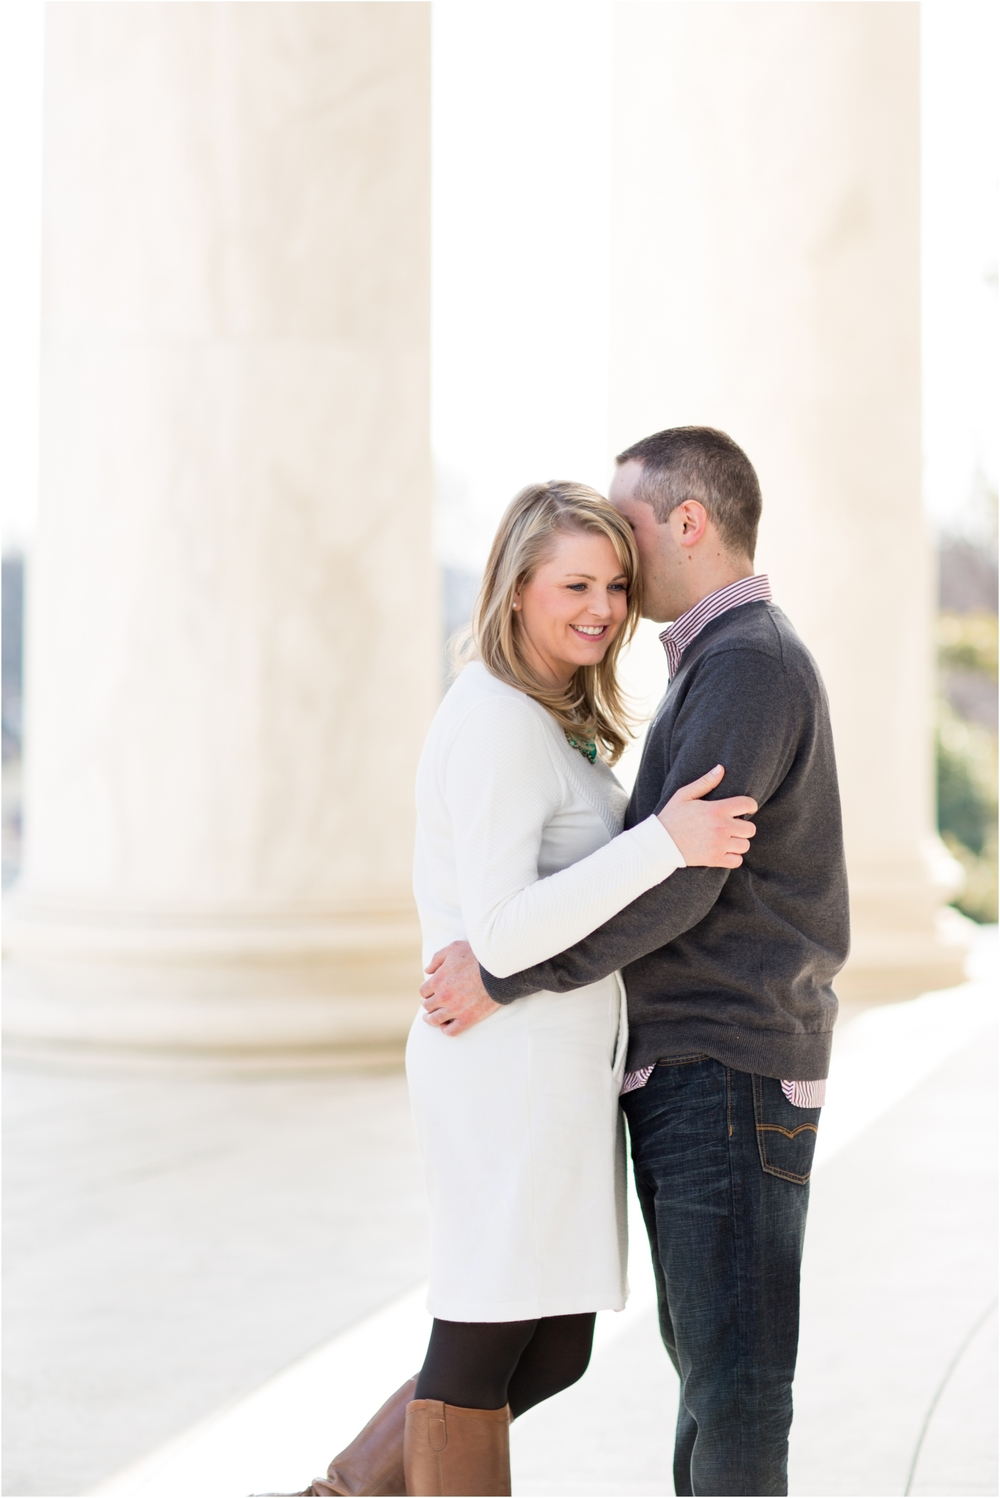 Mary & Nick Engaged-154.jpg